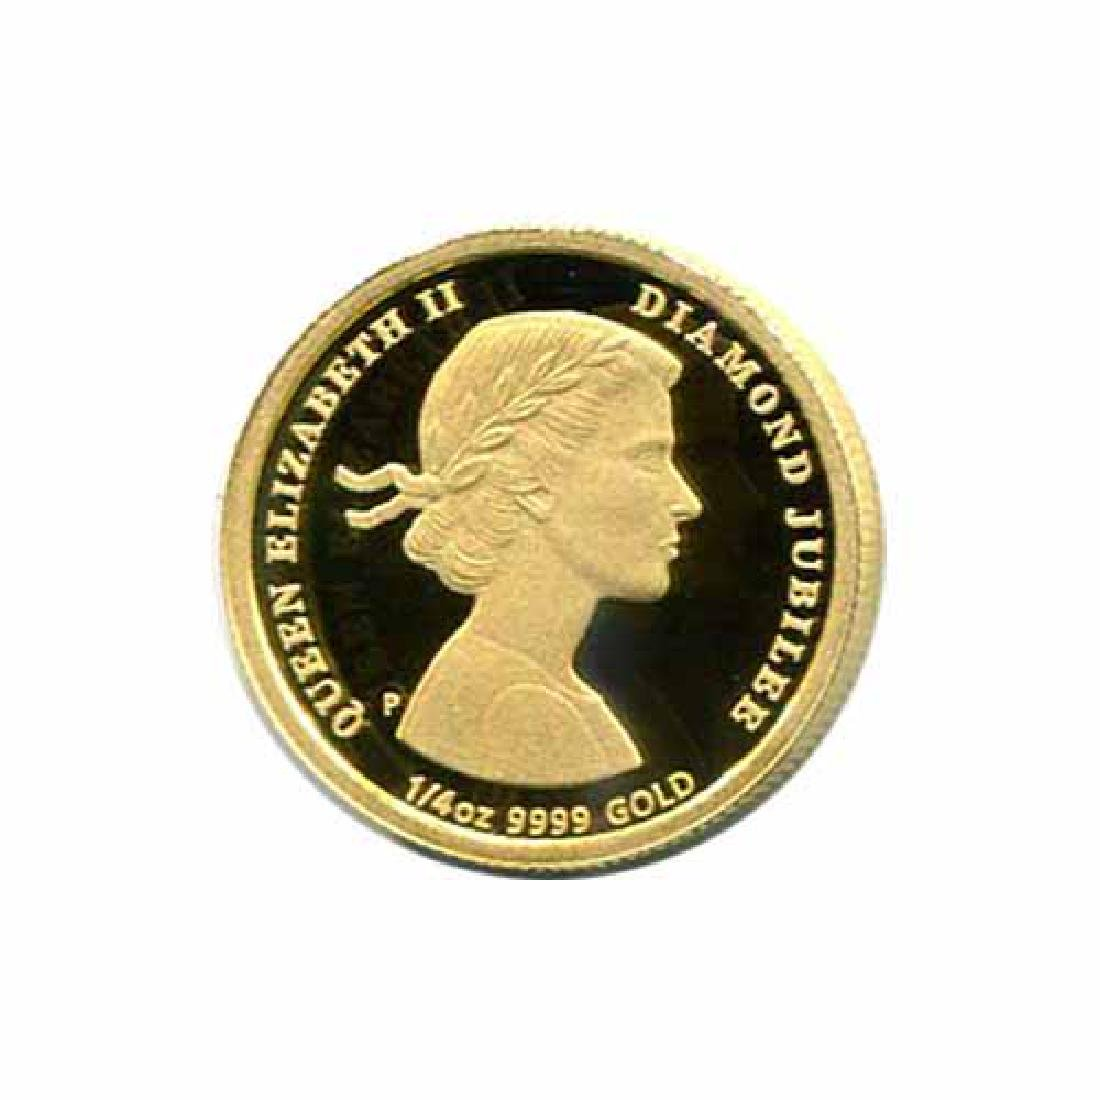 Australia $25 Gold PF 2012 Diamond Jubilee